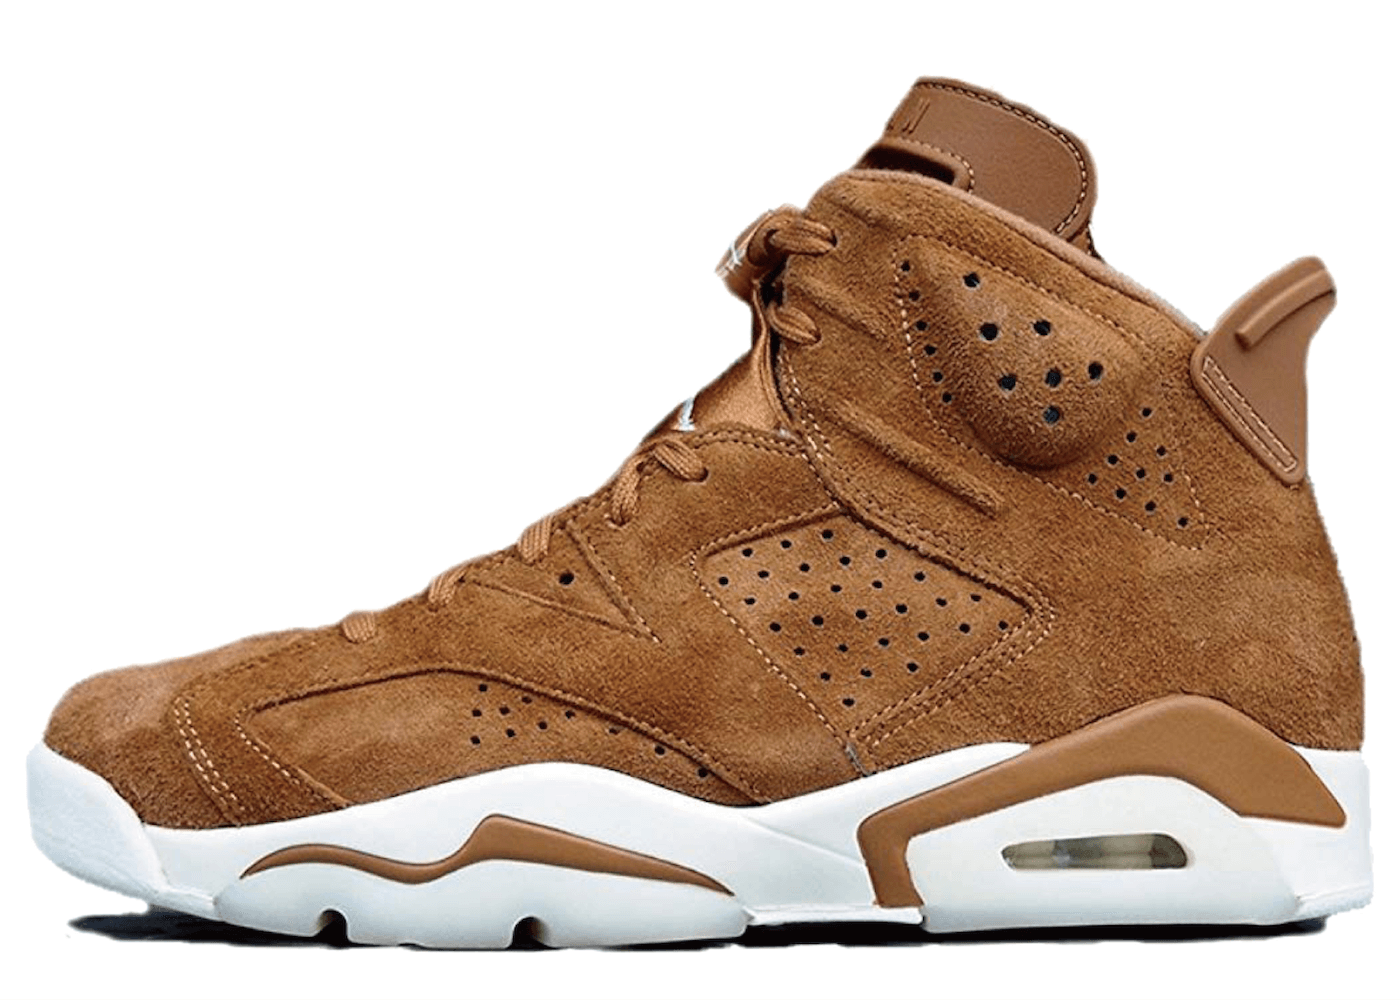 Jordan 6 Retro Wheatの写真